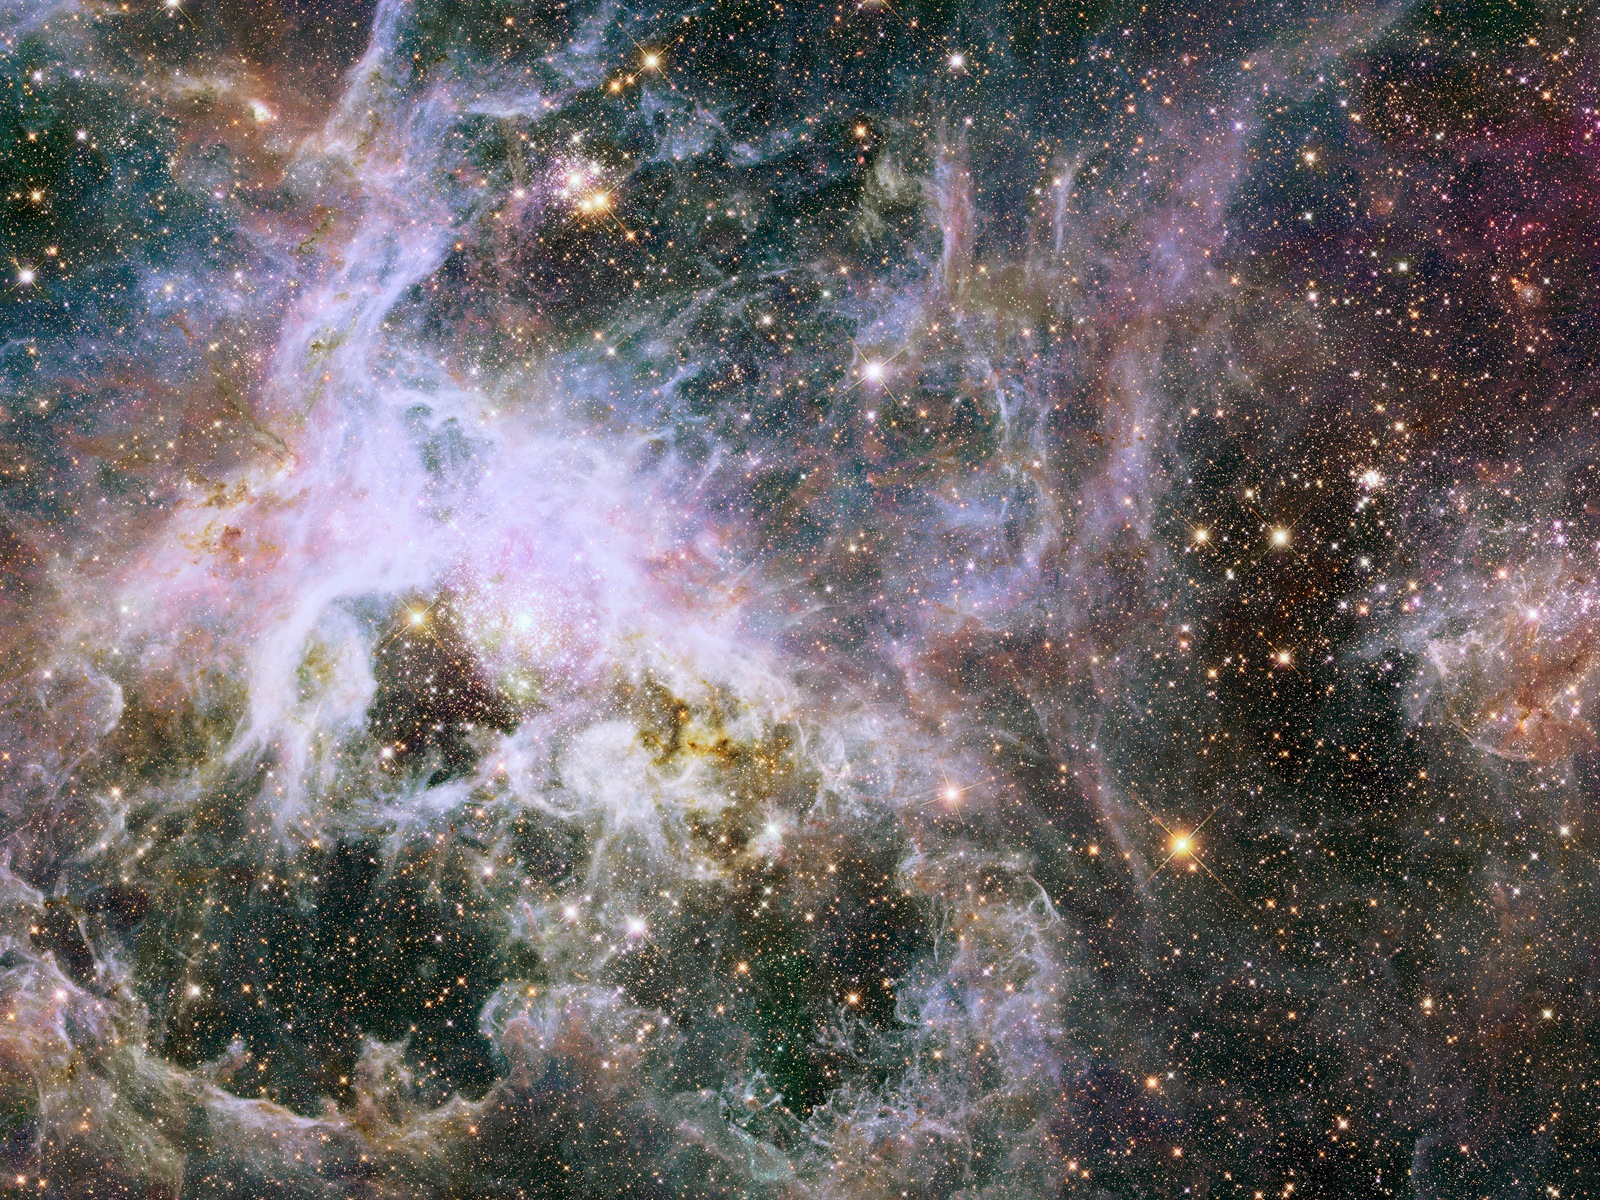 Tarantula Nebula Hubble View in Infrared Light